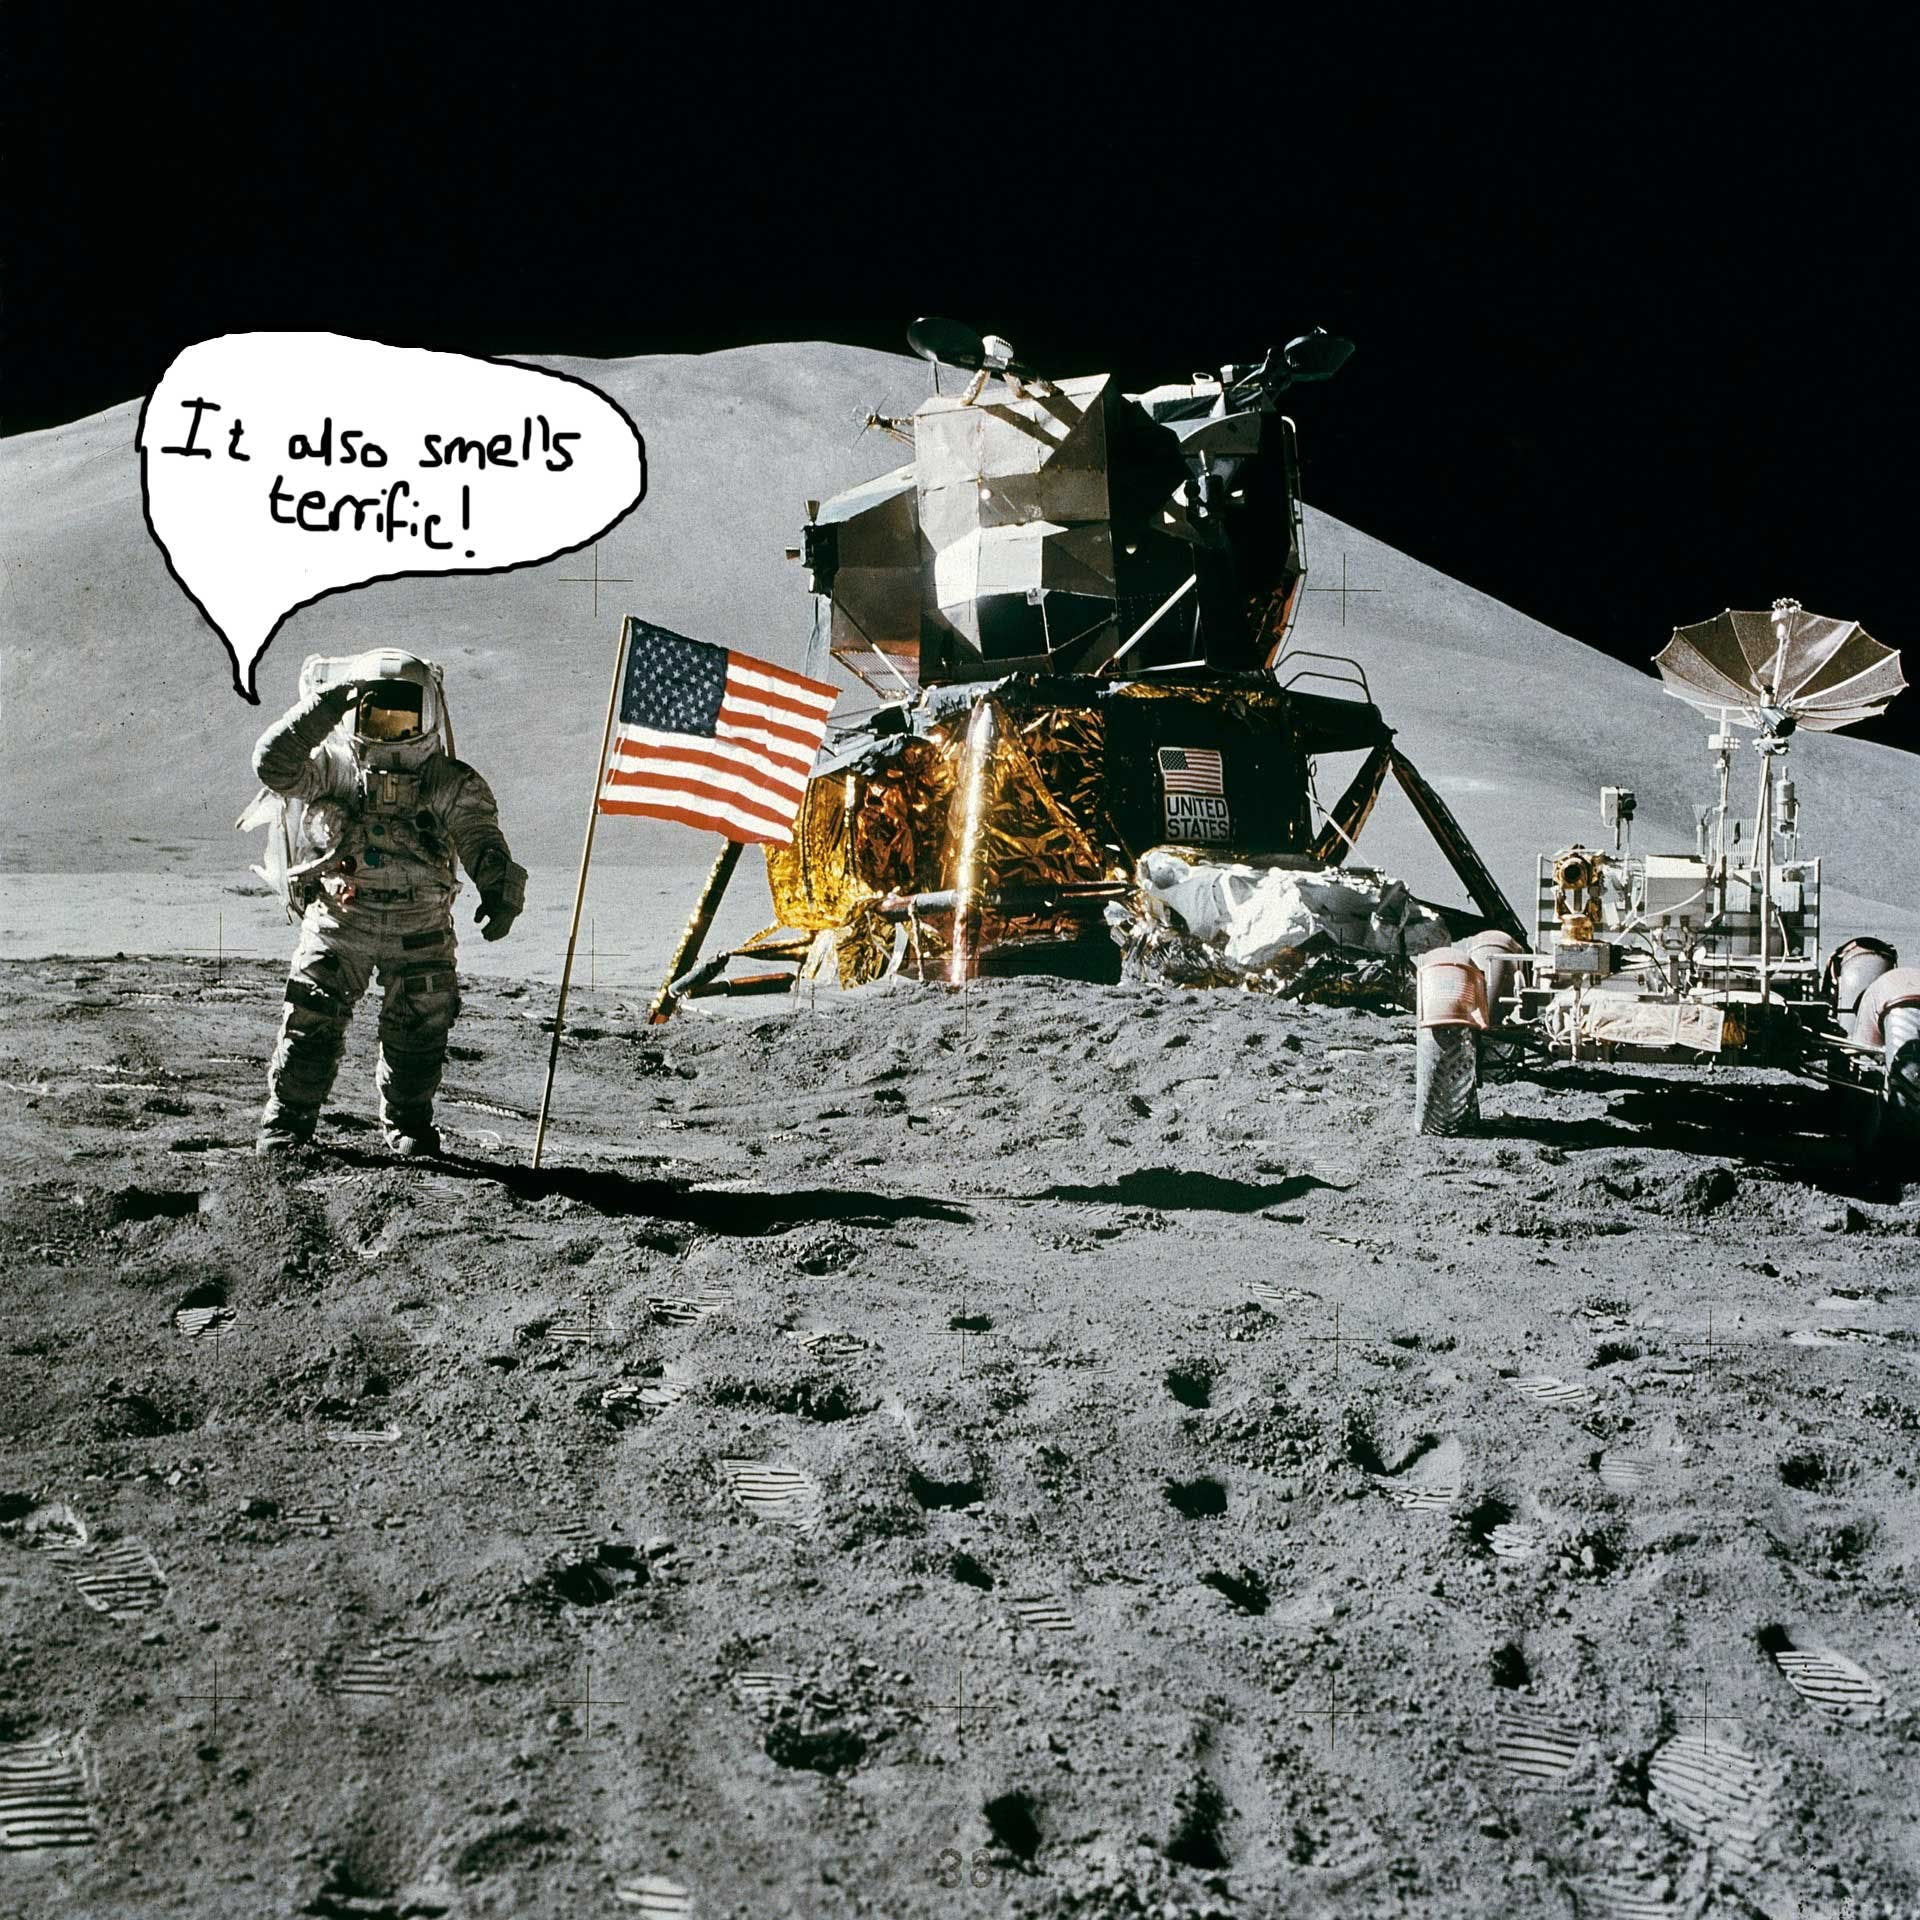 An astronaut delighted by how terrific the moon smells